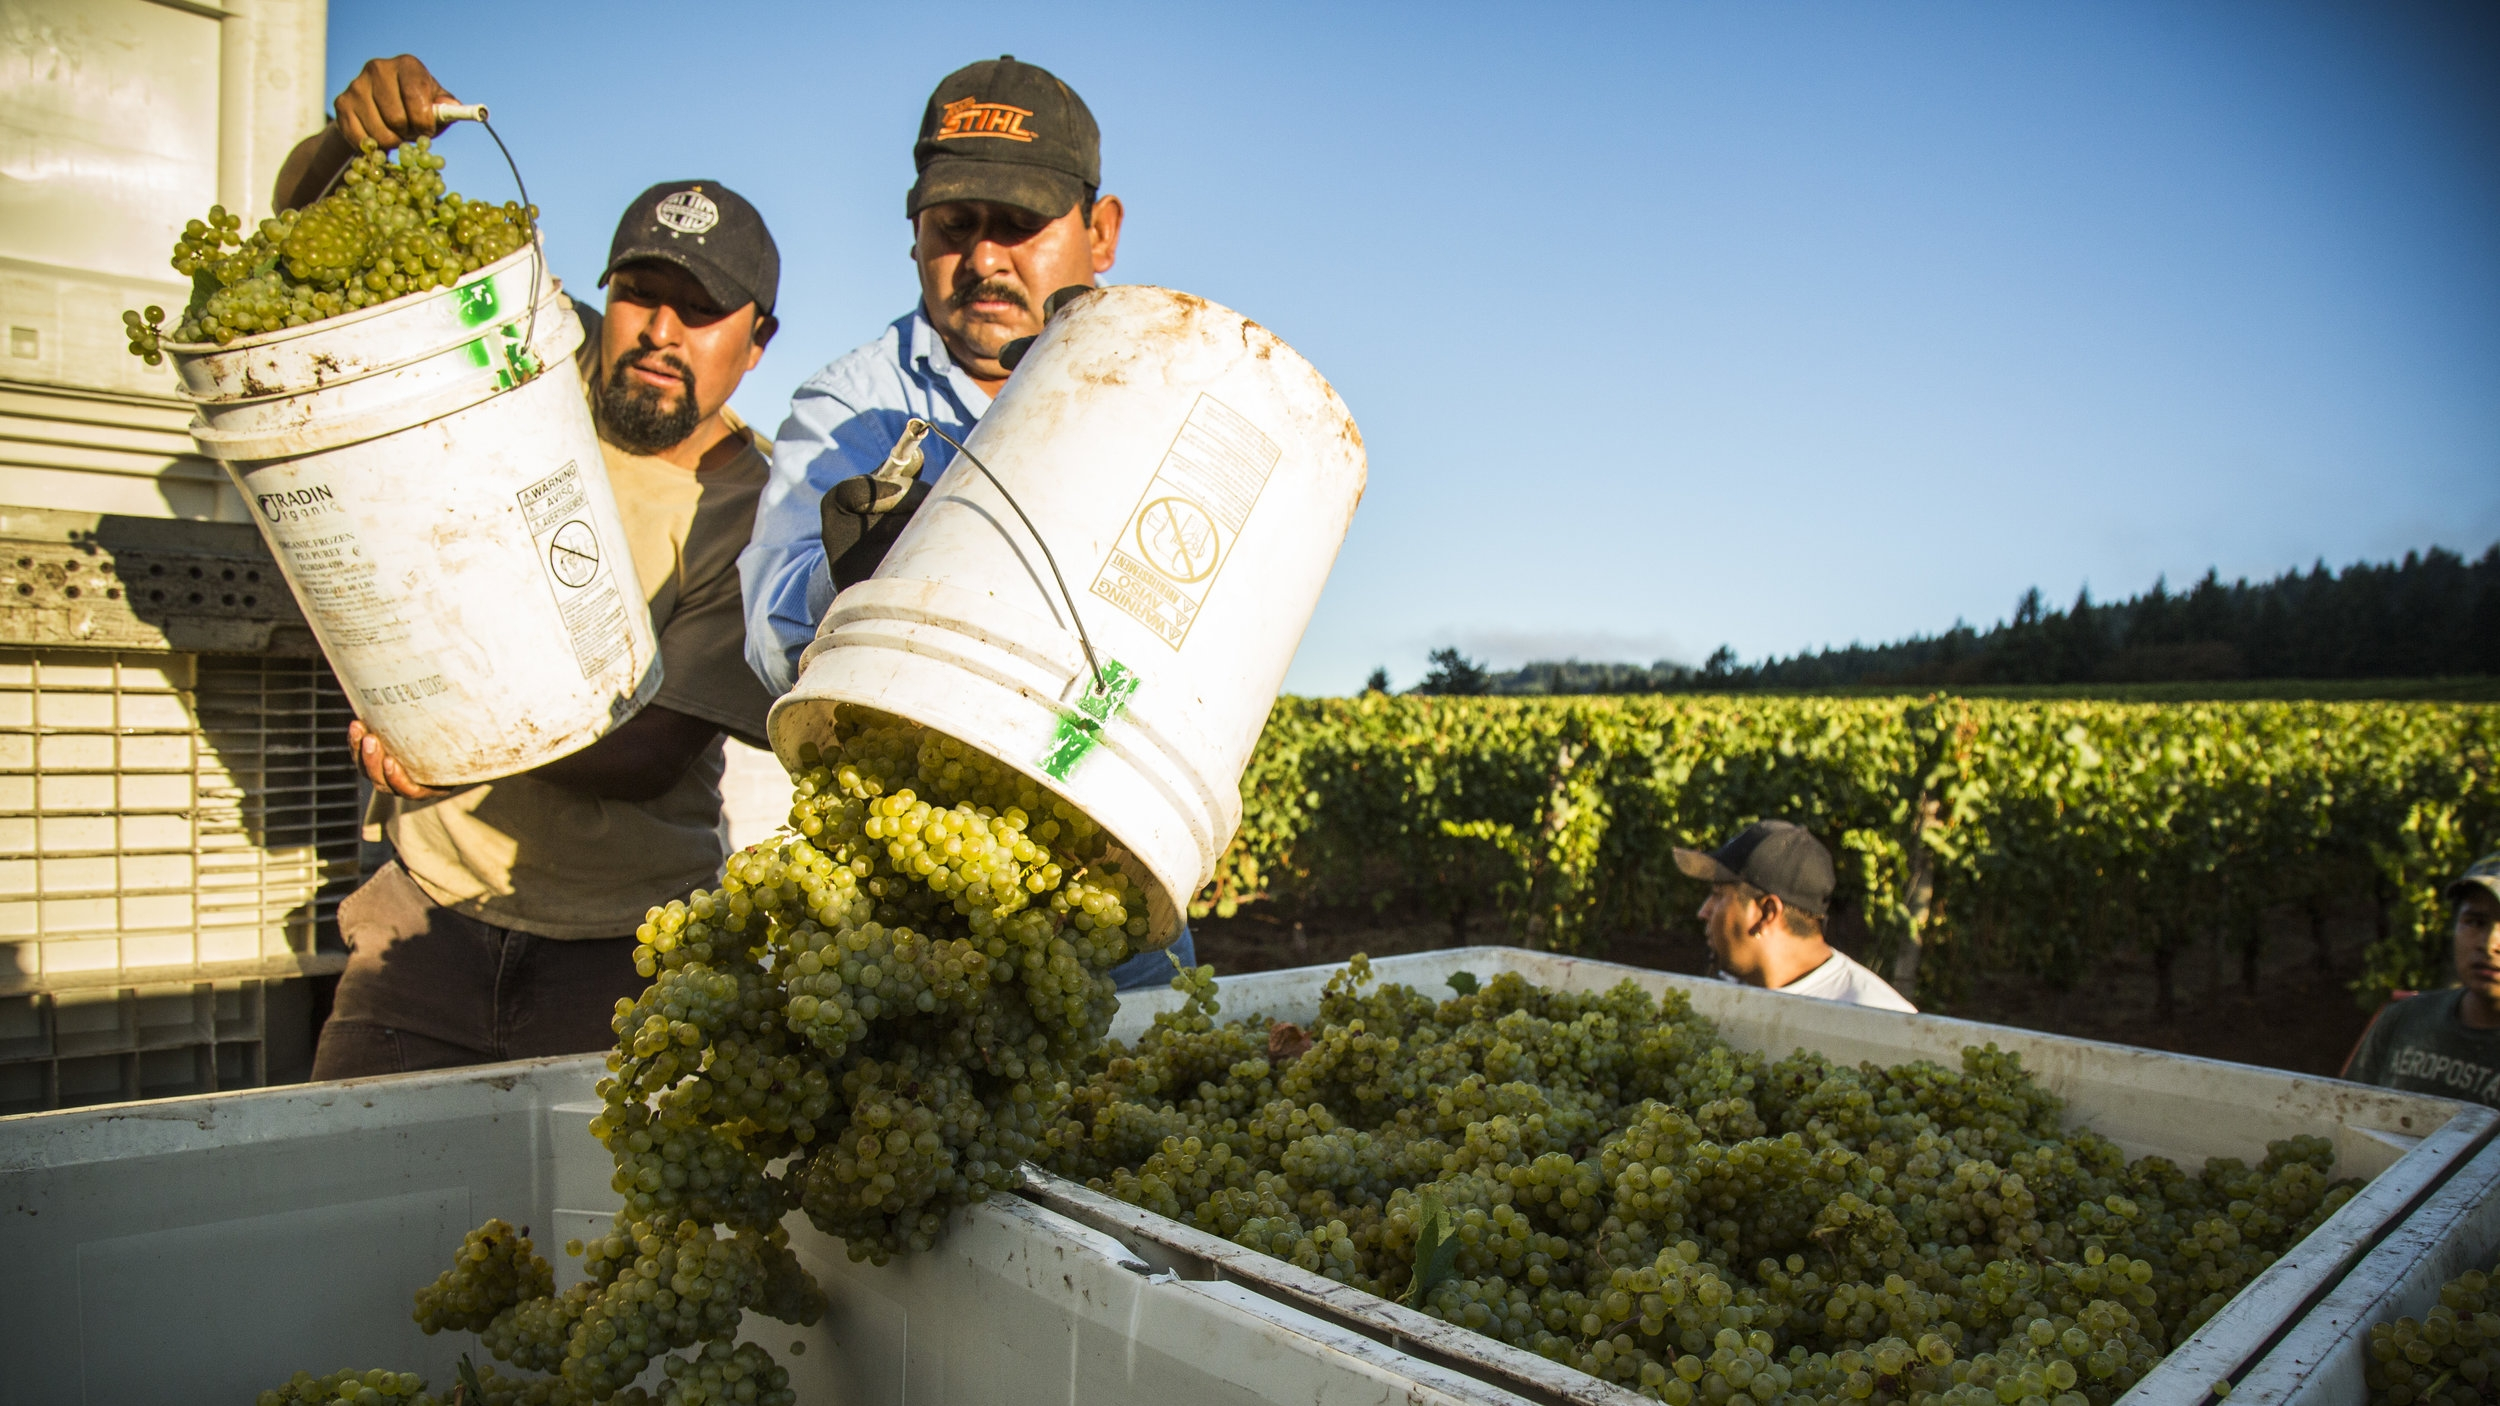 Adelsheim Employees Unloading Grapes into Truck from Harvest